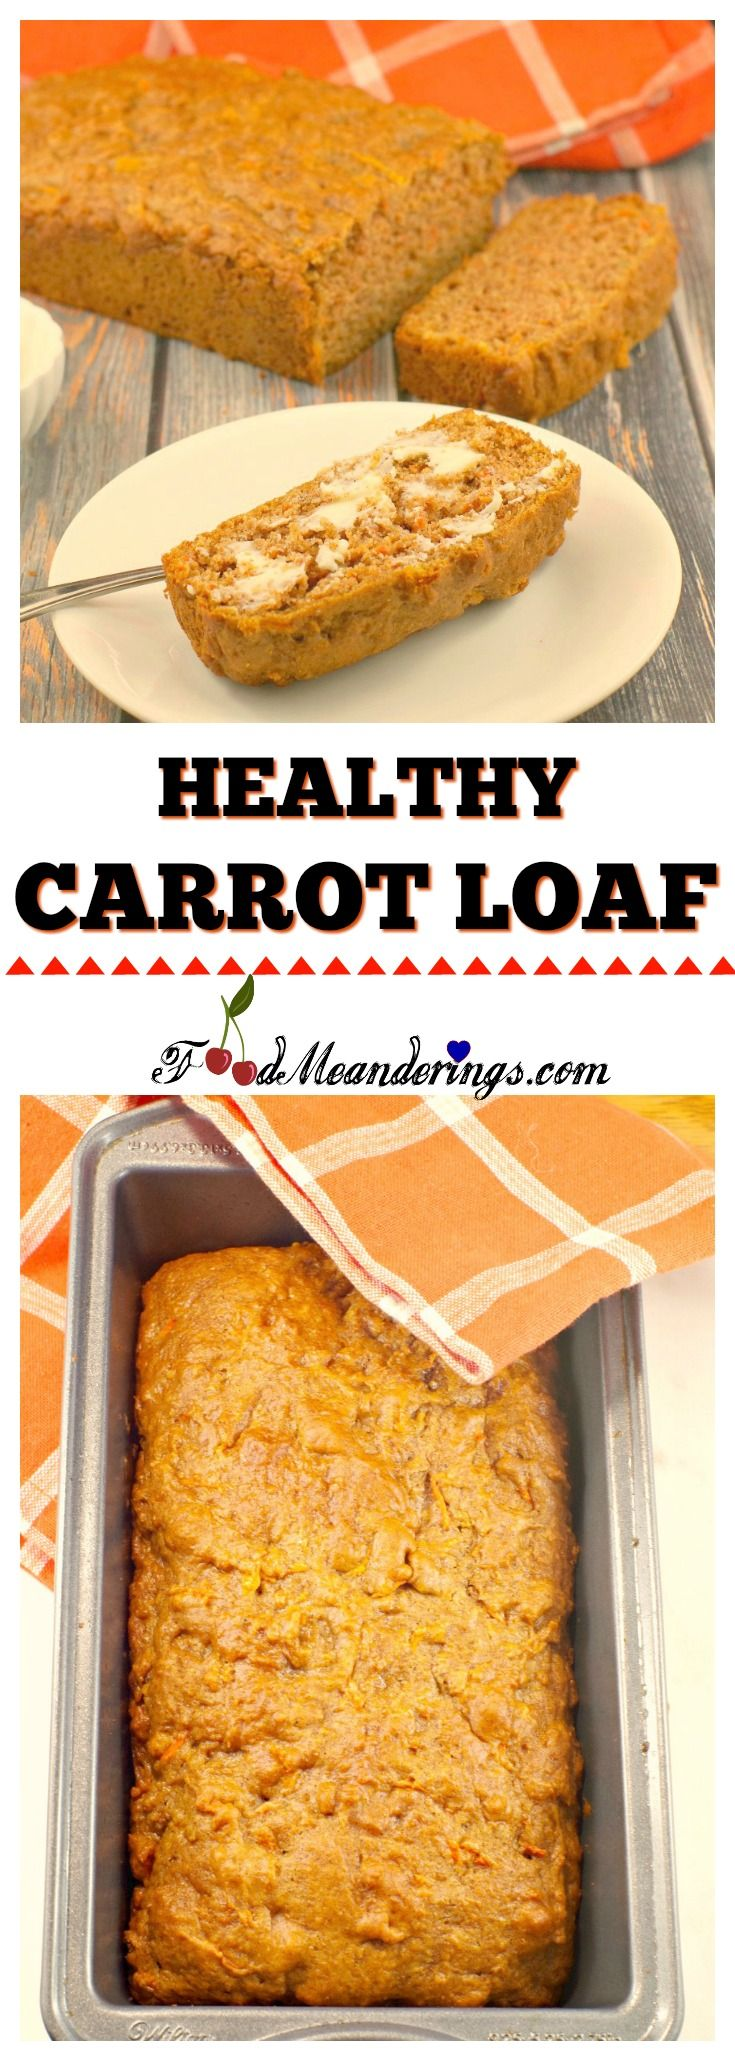 This healthy and easy carrot loaf recipe is quick, simple to make and full of real wholesome ingredients, like whole wheat flour and yogurt! It makes a great lunchbox snack or dessert.#carrot #bread #breakfastrecipes #loaf #carrot #healthyfood #healthyeating #healthy #healthyrecipes #snacks #healthysnacks #nutfree